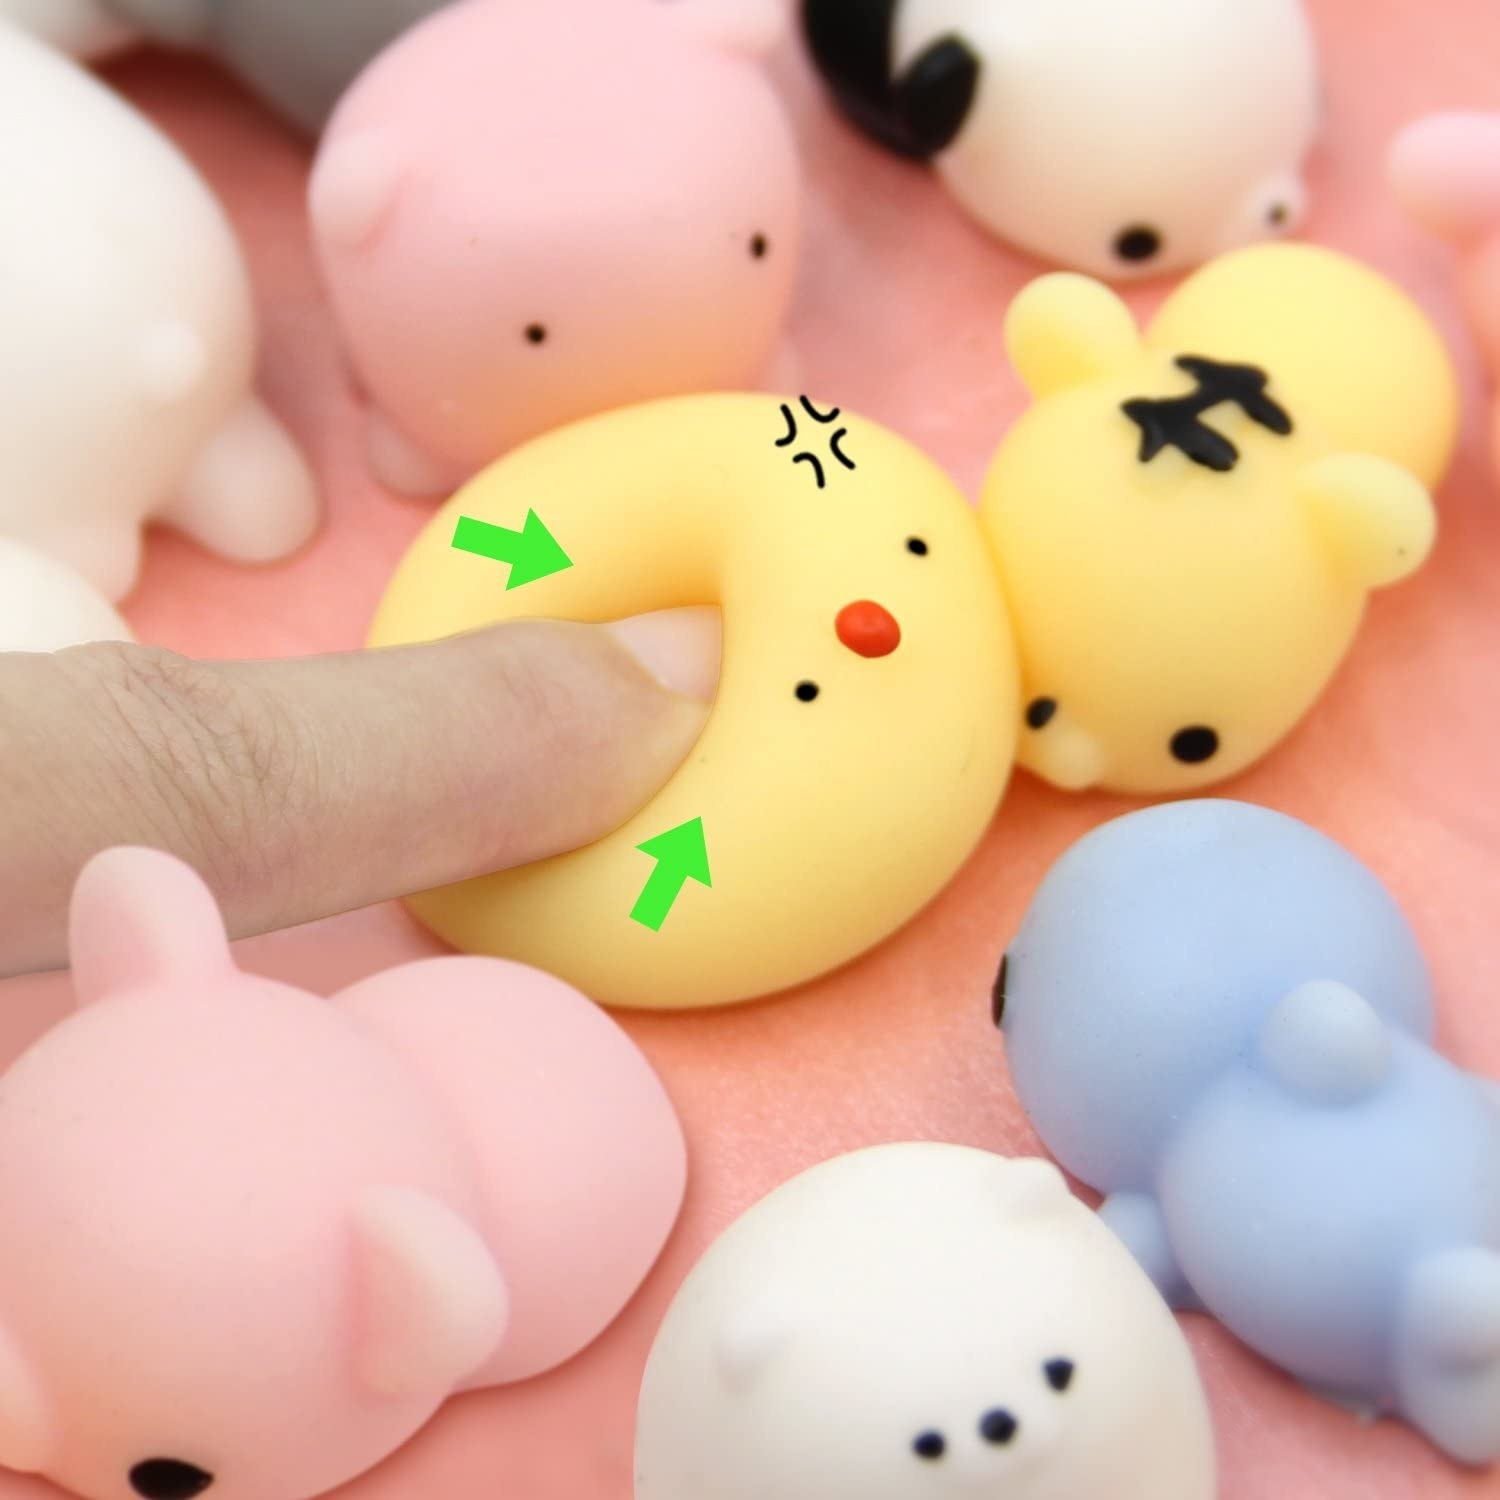 Finger presses on chicken-shaped squishy stress relief toy